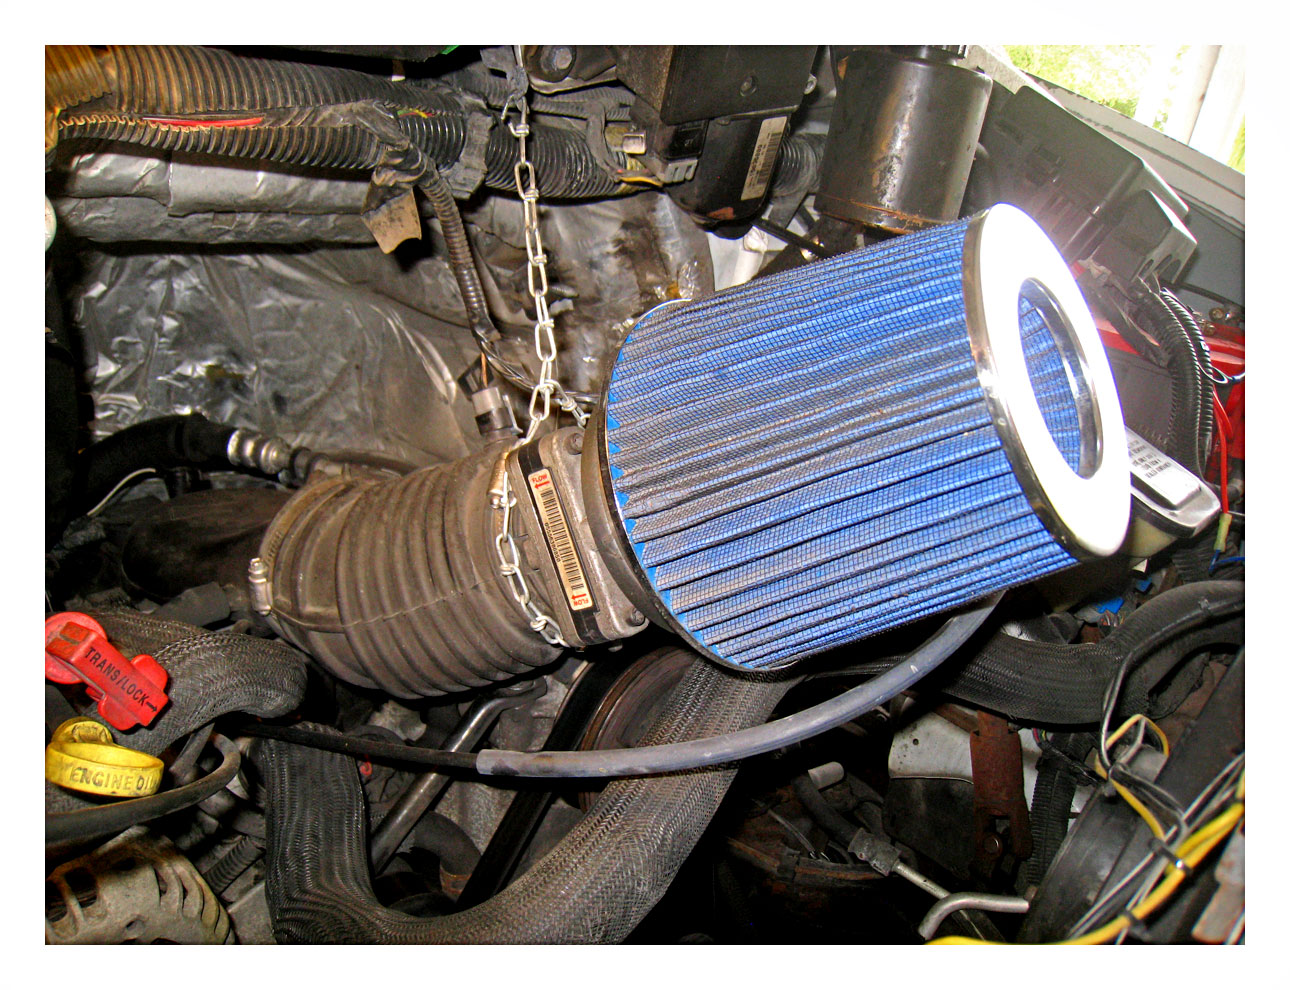 Cold Air intake.